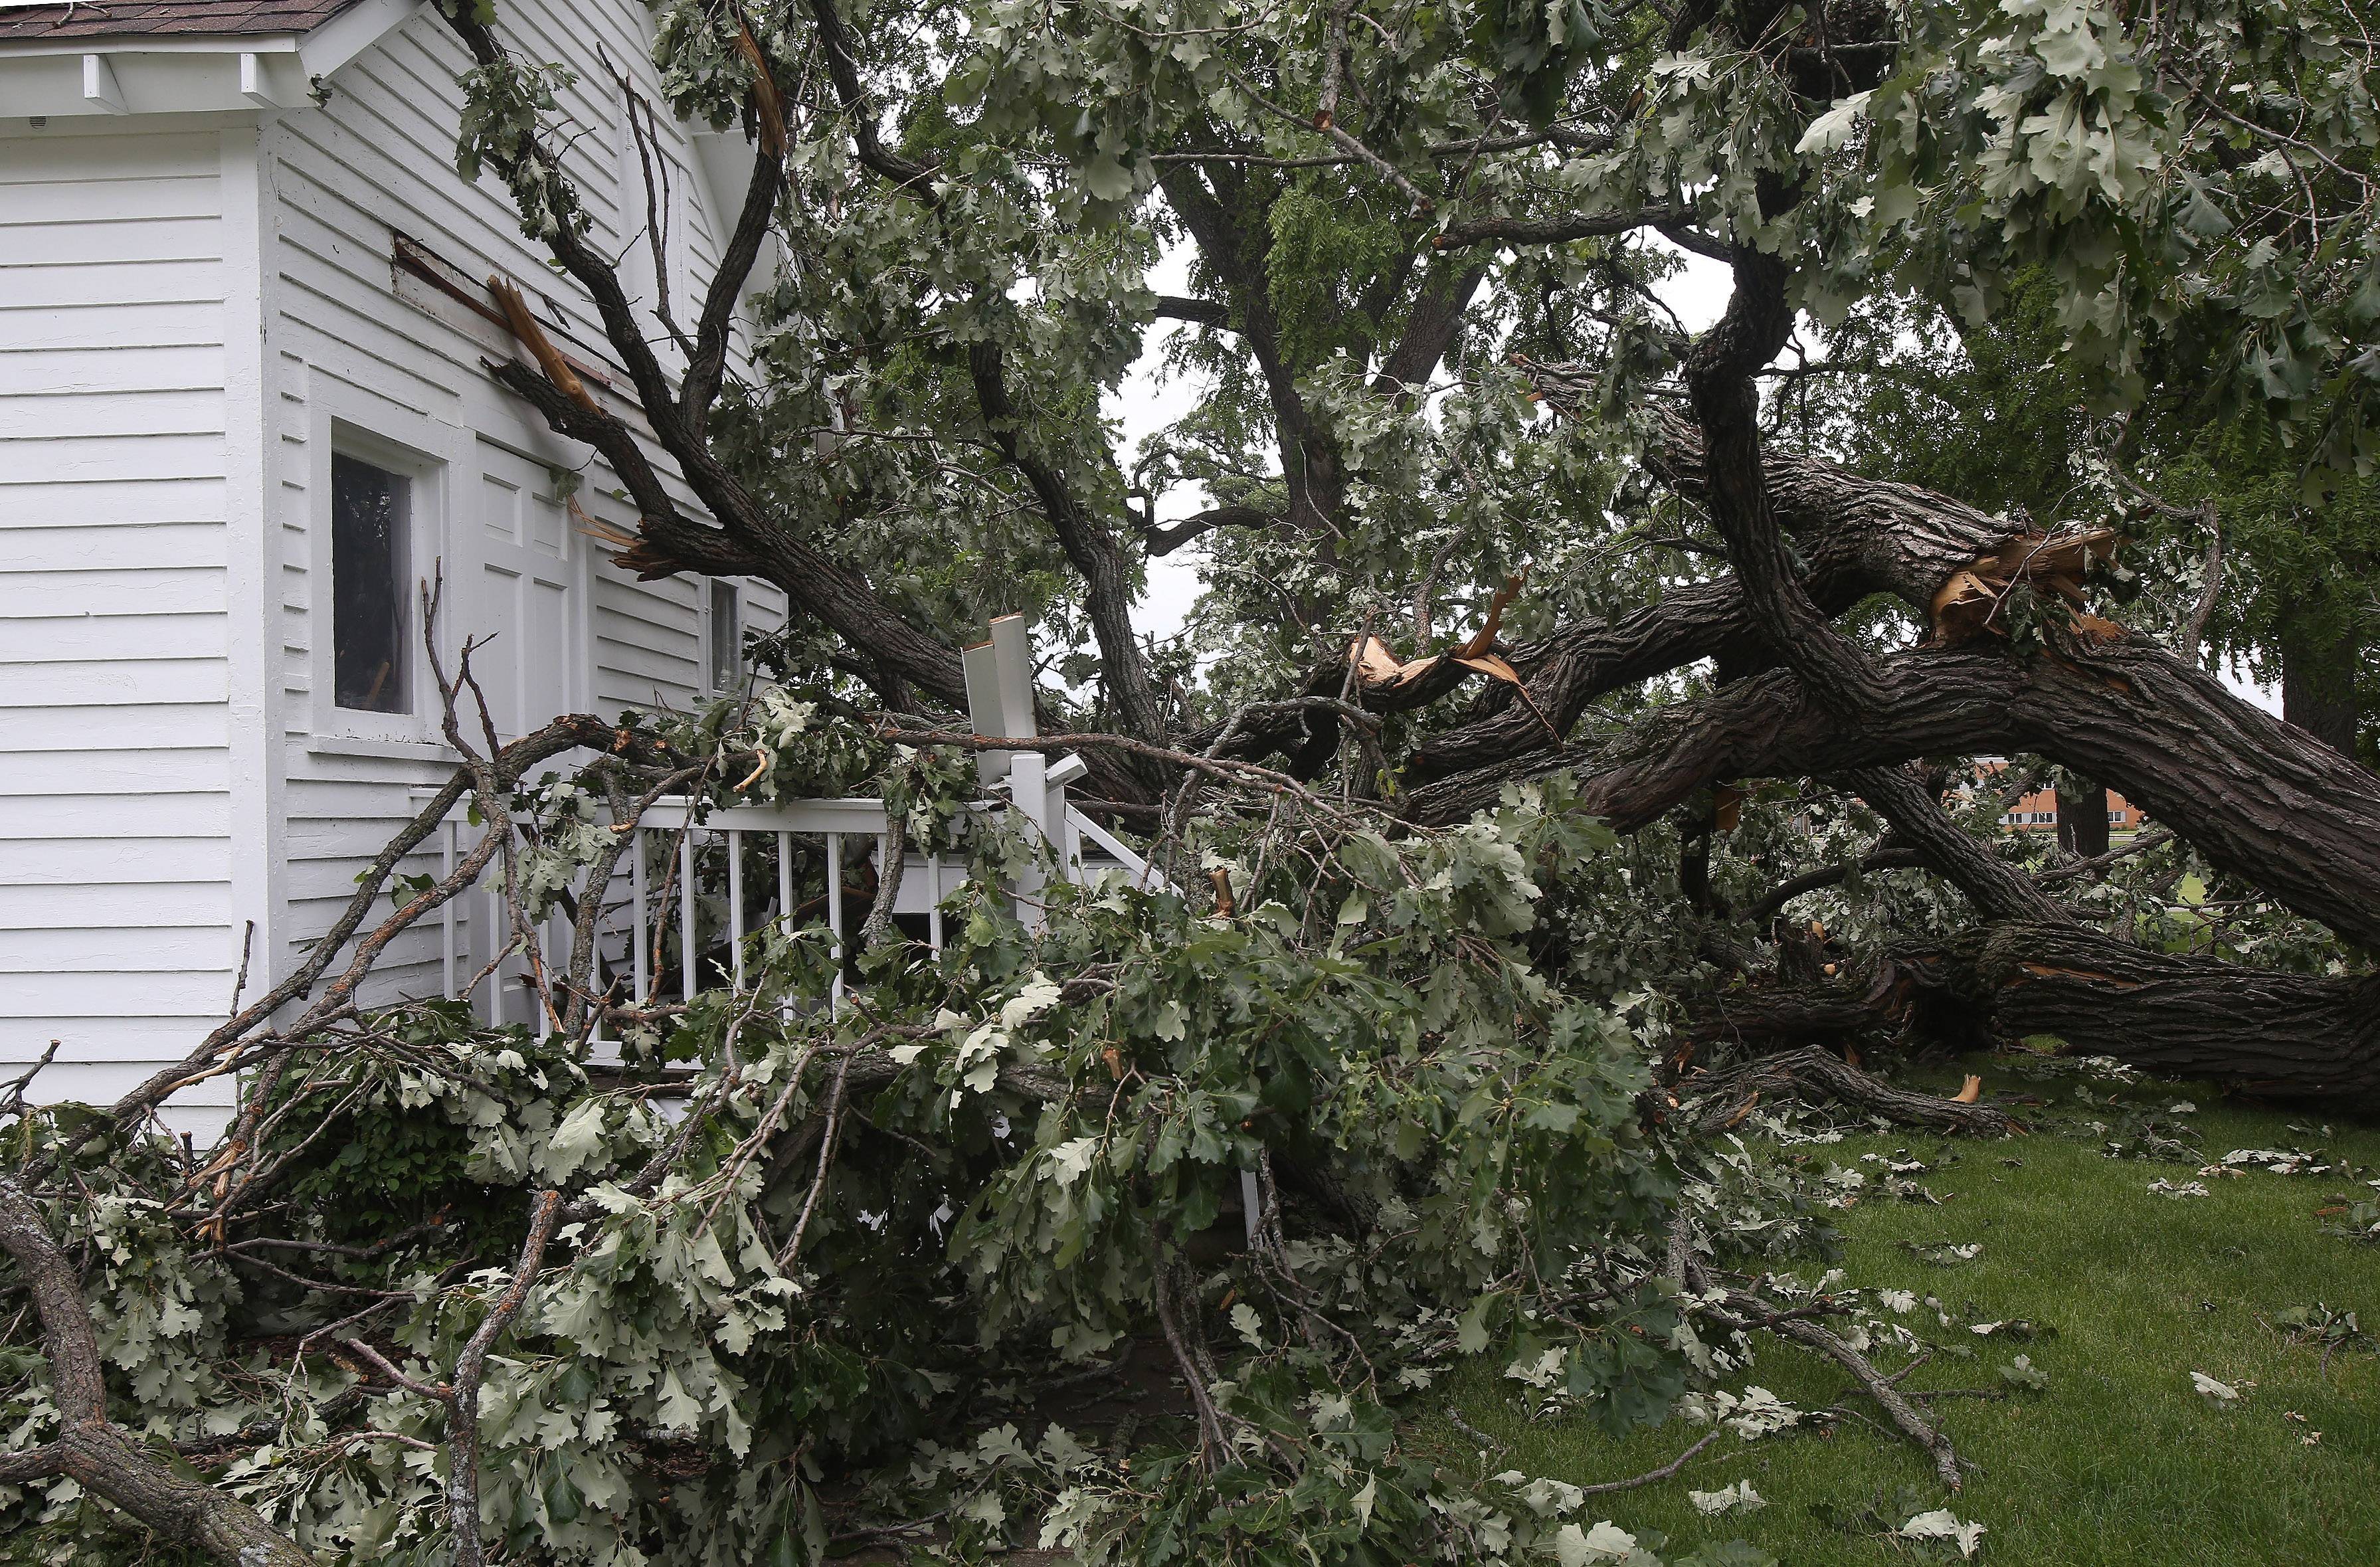 The back porch of the historic Andrew C. Cook House in Wauconda is damaged by a tree that fell during a storm Saturday afternoon.